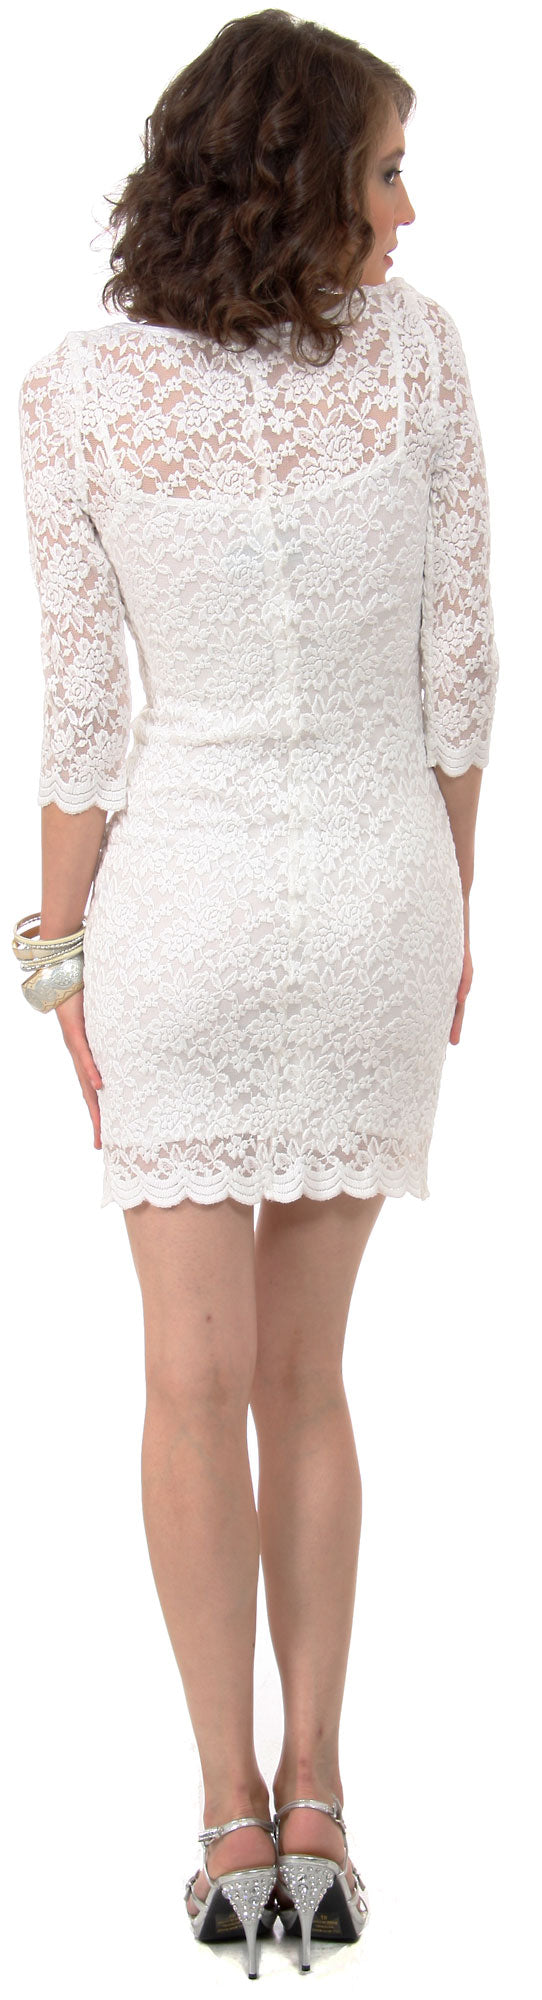 Image of Floral Pattern Lace Short Party Dress With 3/4 Sleeves back in Ivory